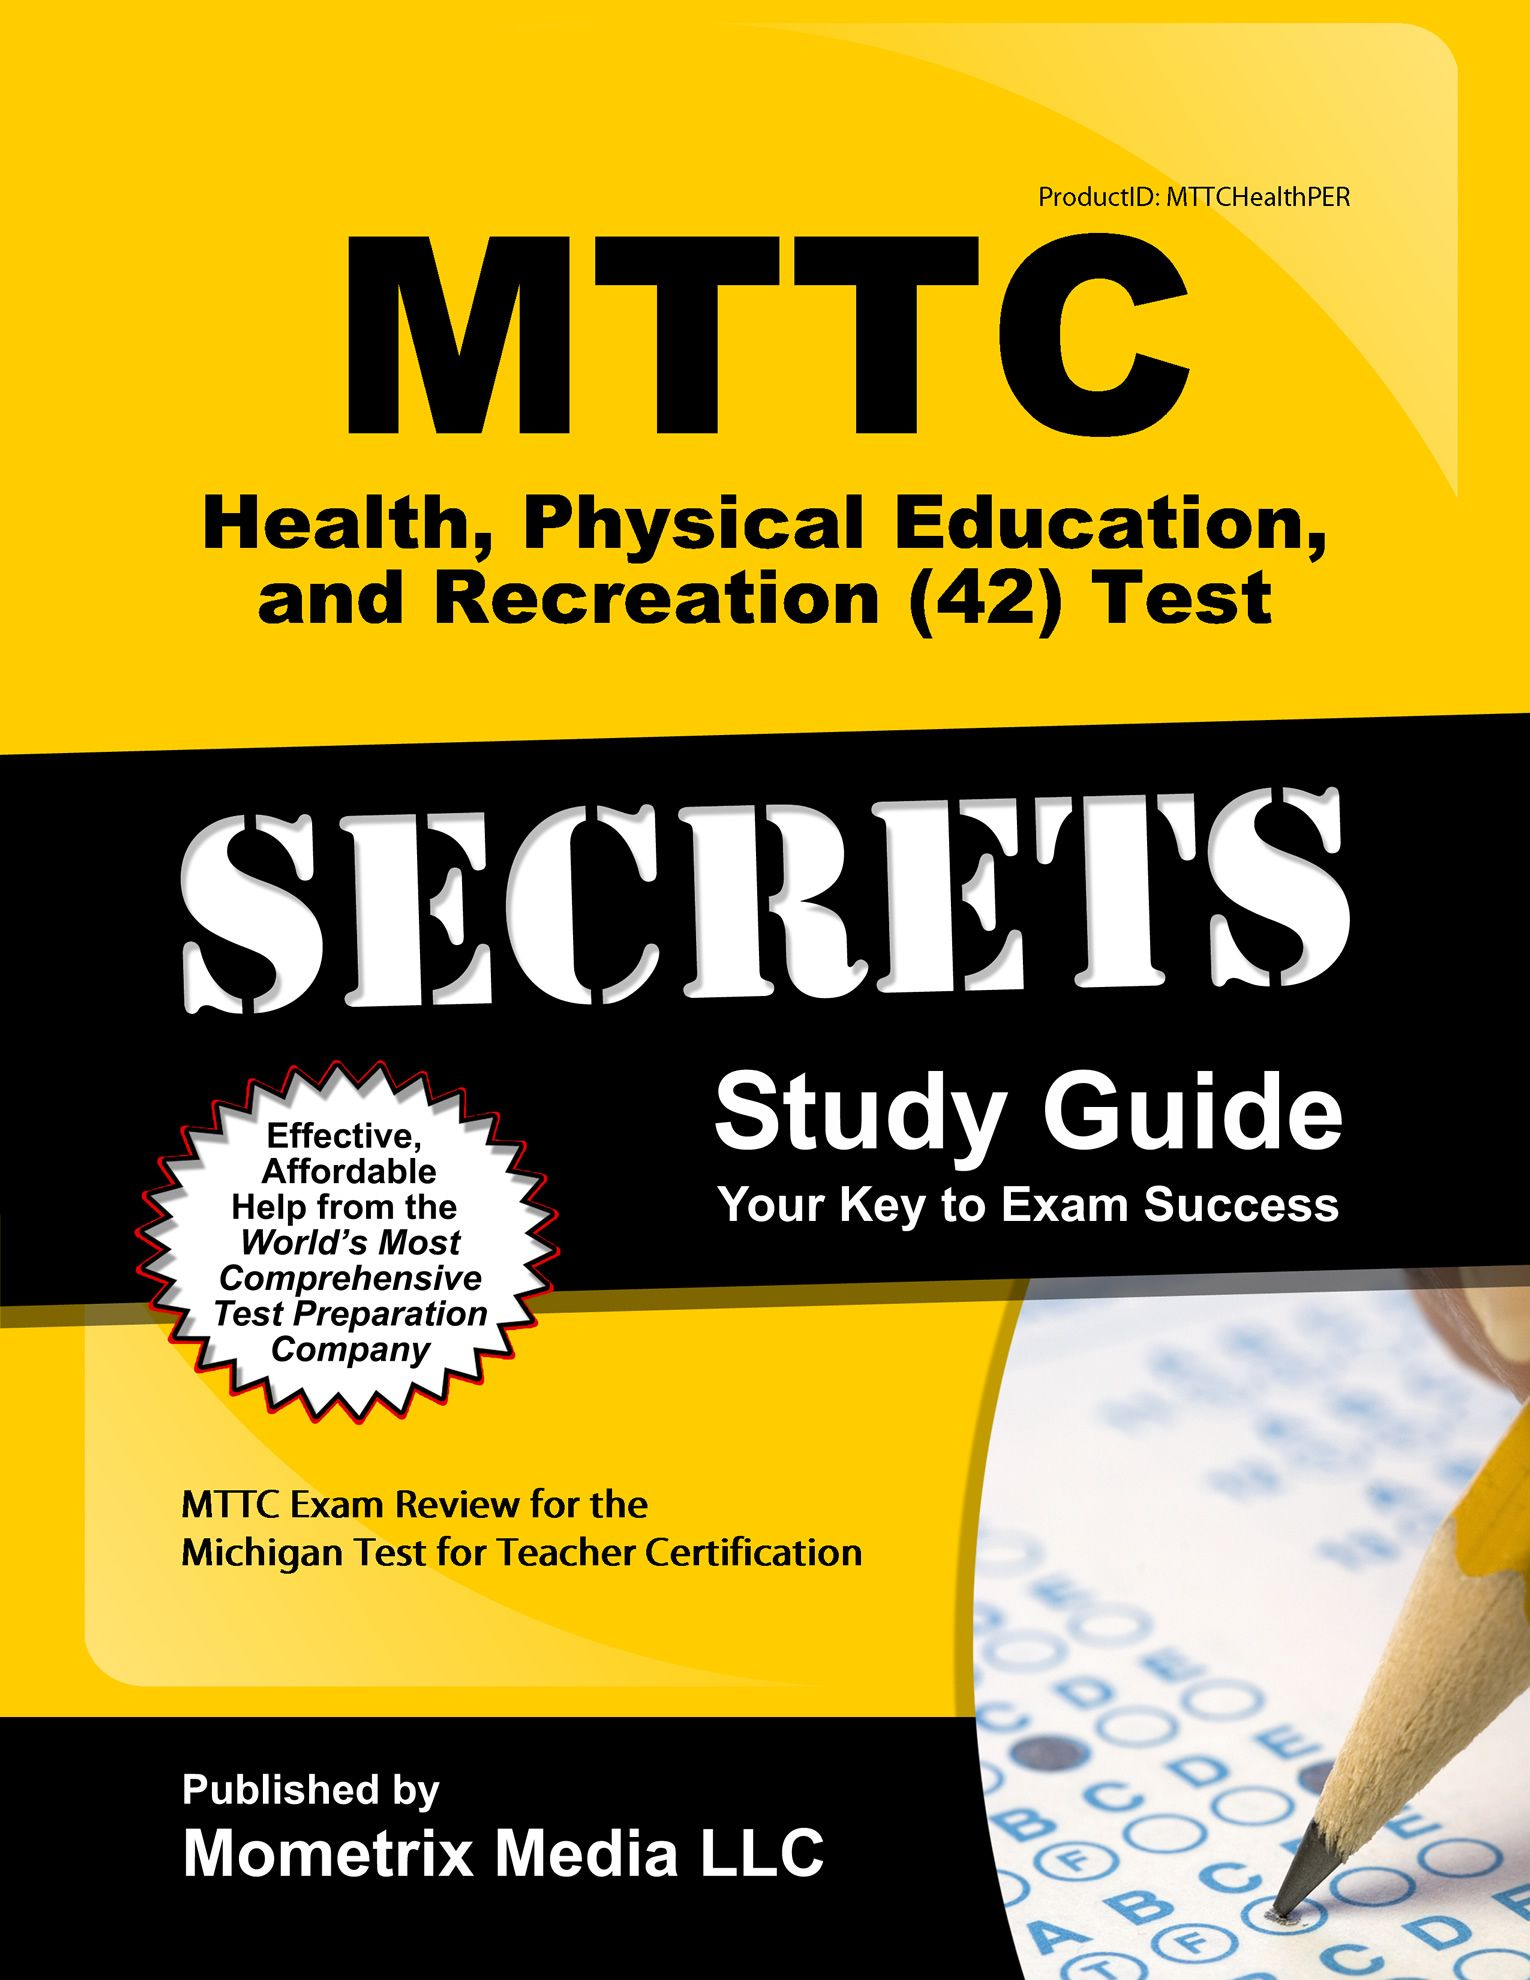 Missouri teacher certification test michaelkorsus missouri teacher certification test mttc health physical education and recreation 42 test study xflitez Gallery